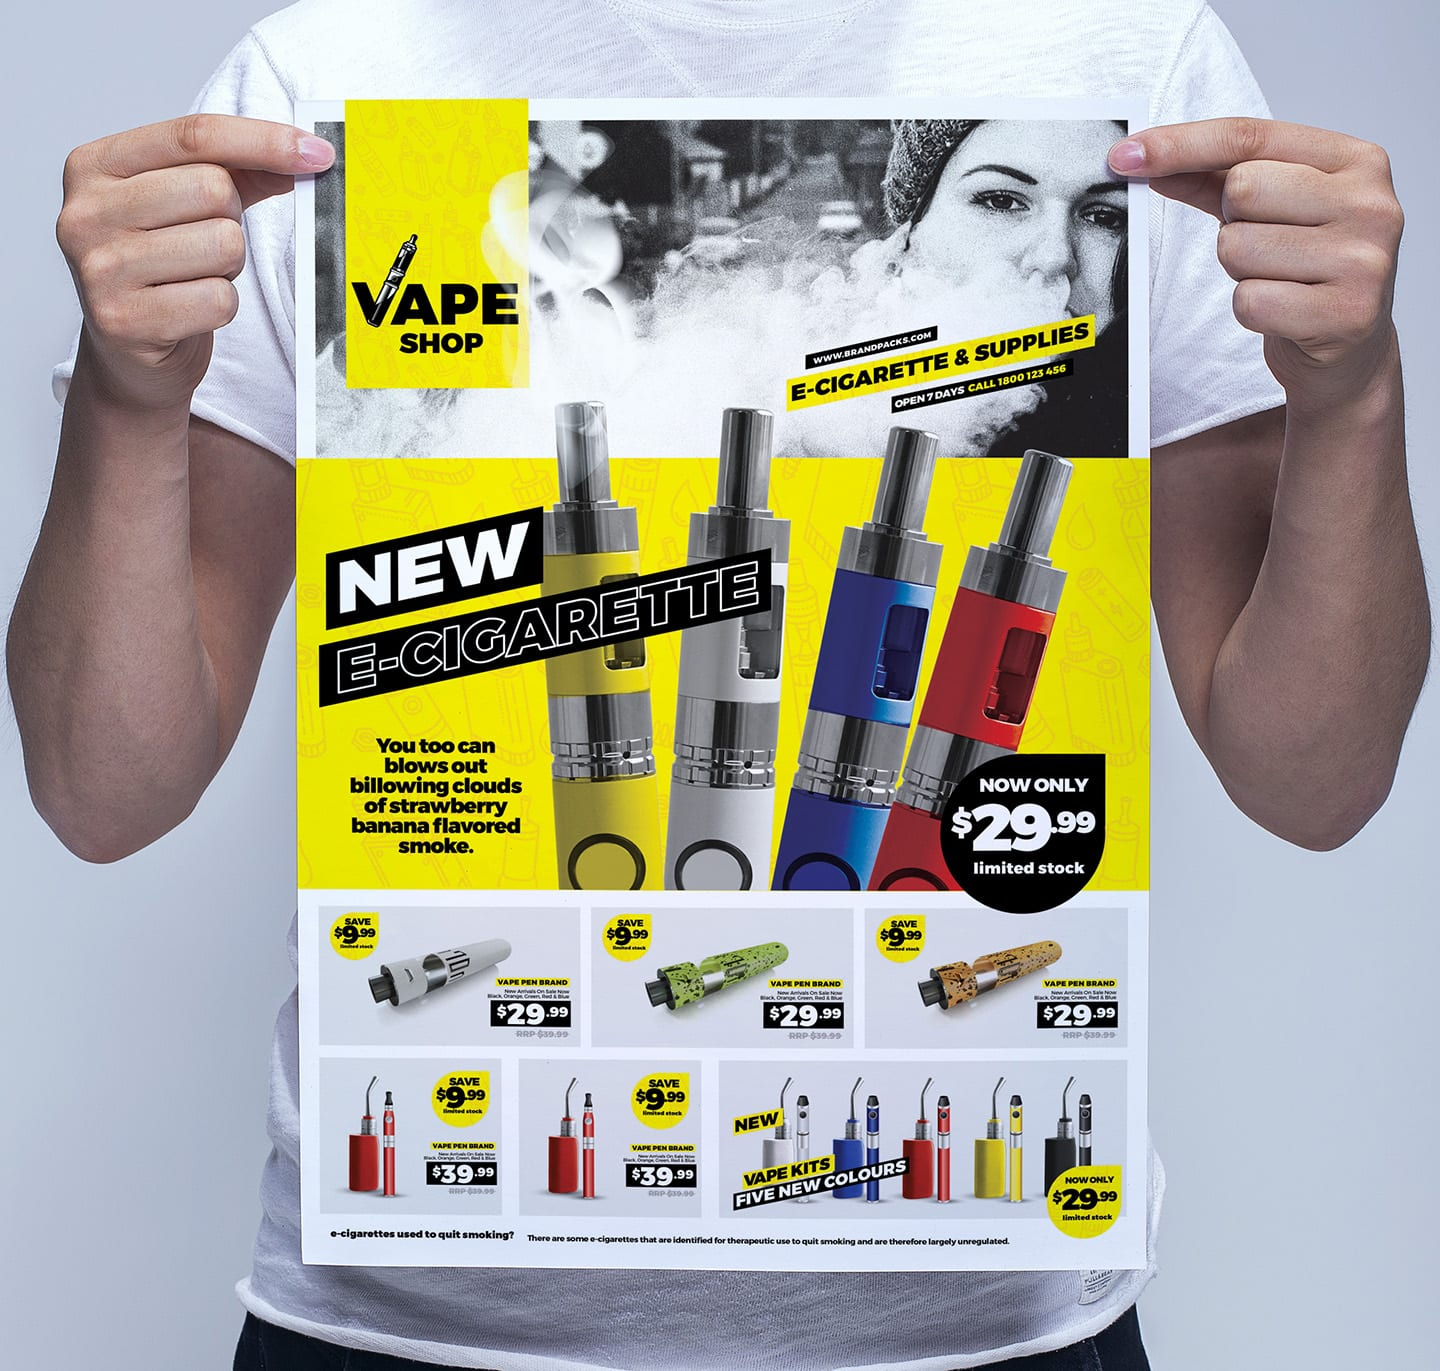 Vape Shop Poster Template